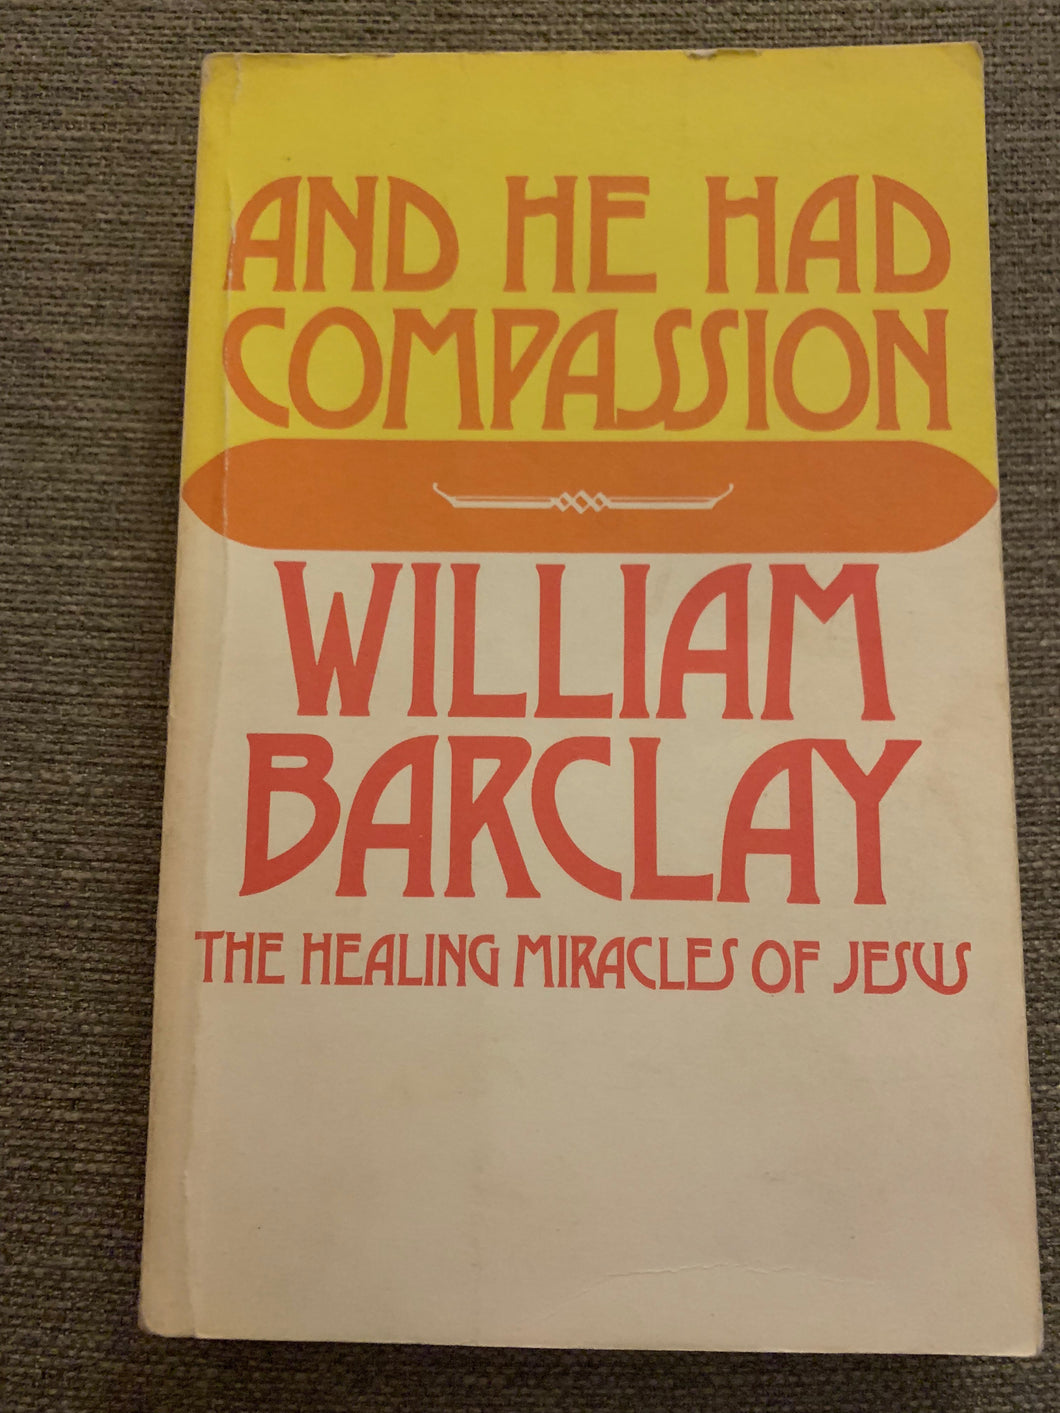 And He Had Compassion by Willaim Barclay